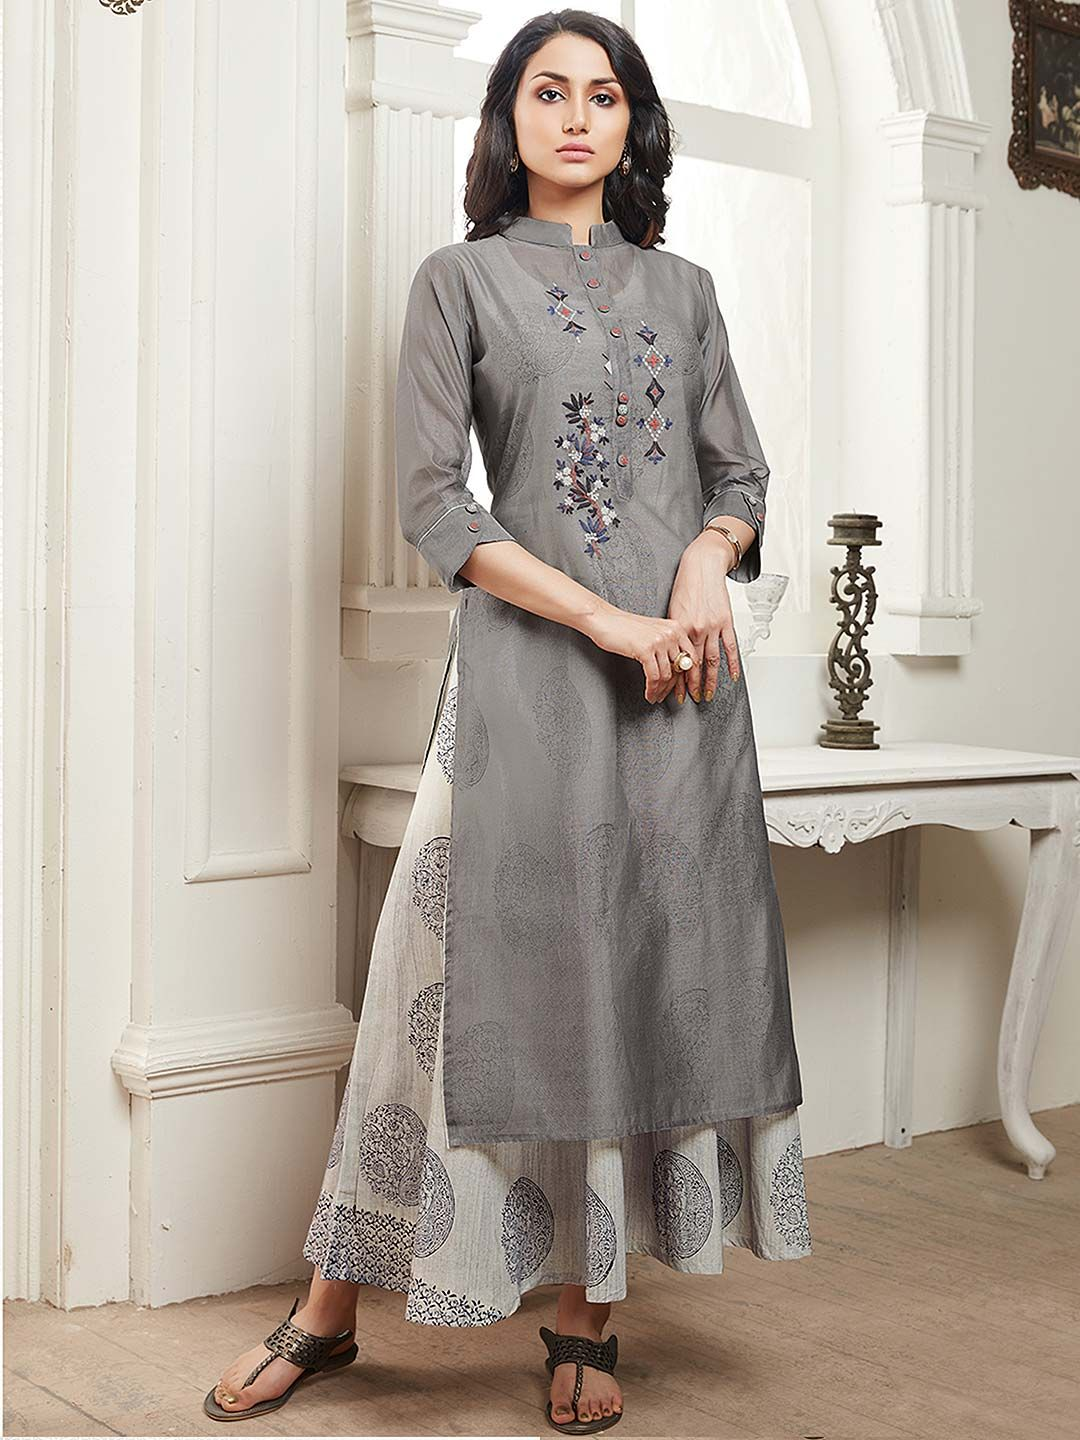 Party Wear Heavy Kurtis For Marriage (162)